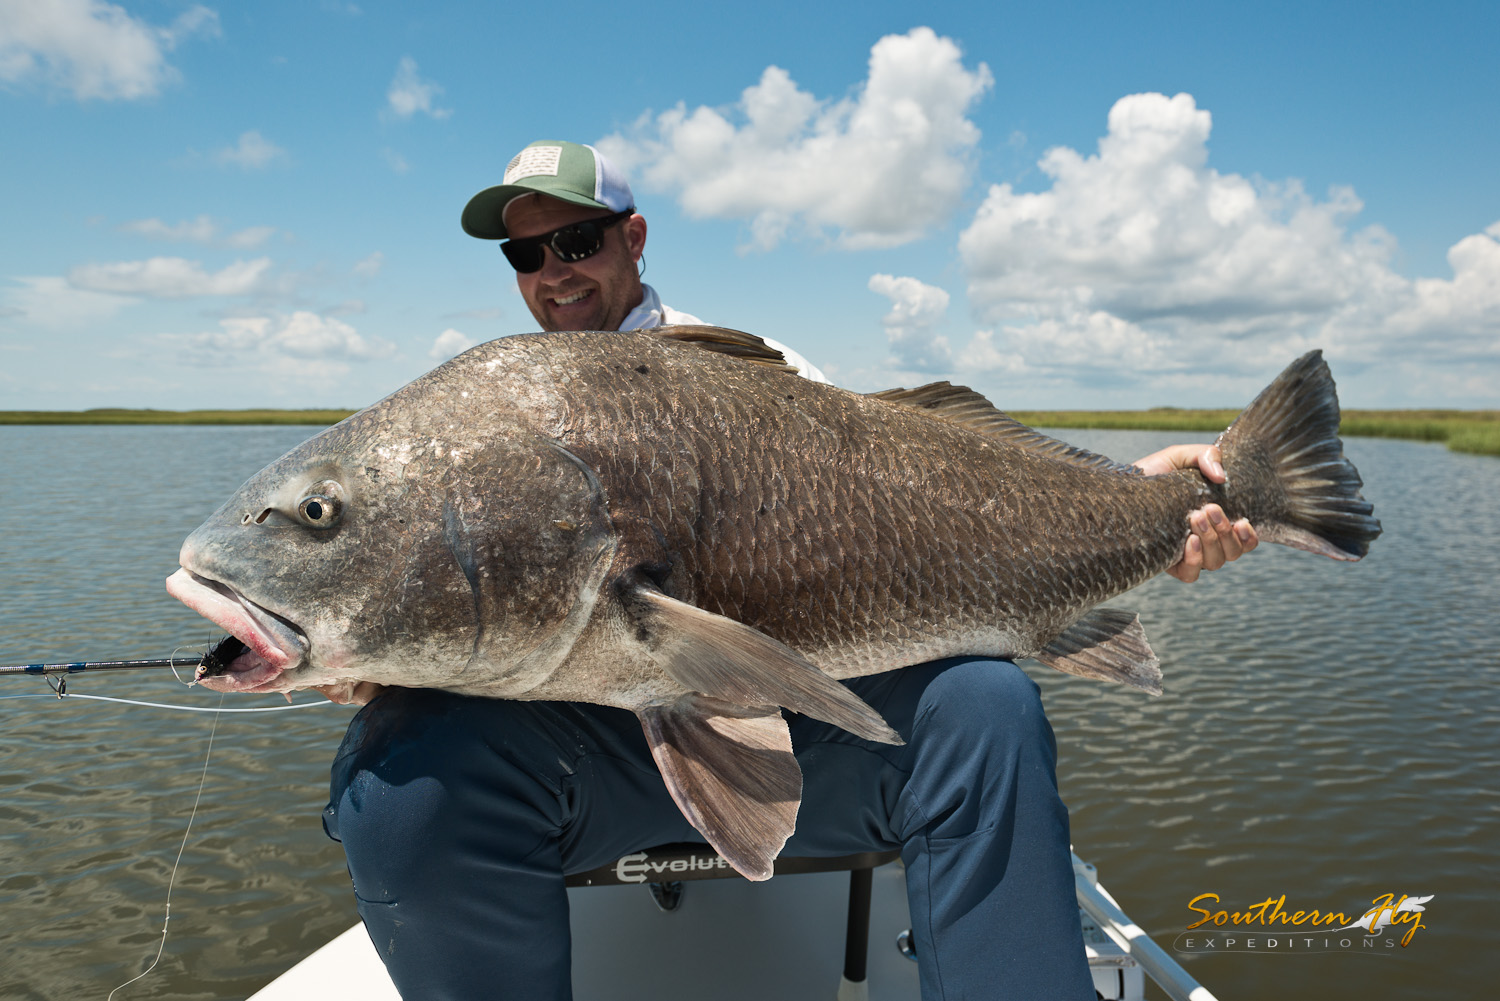 2019-07-29-30_SouthernFlyExpeditions_NewOrleans_AlanFeeser-6.jpg